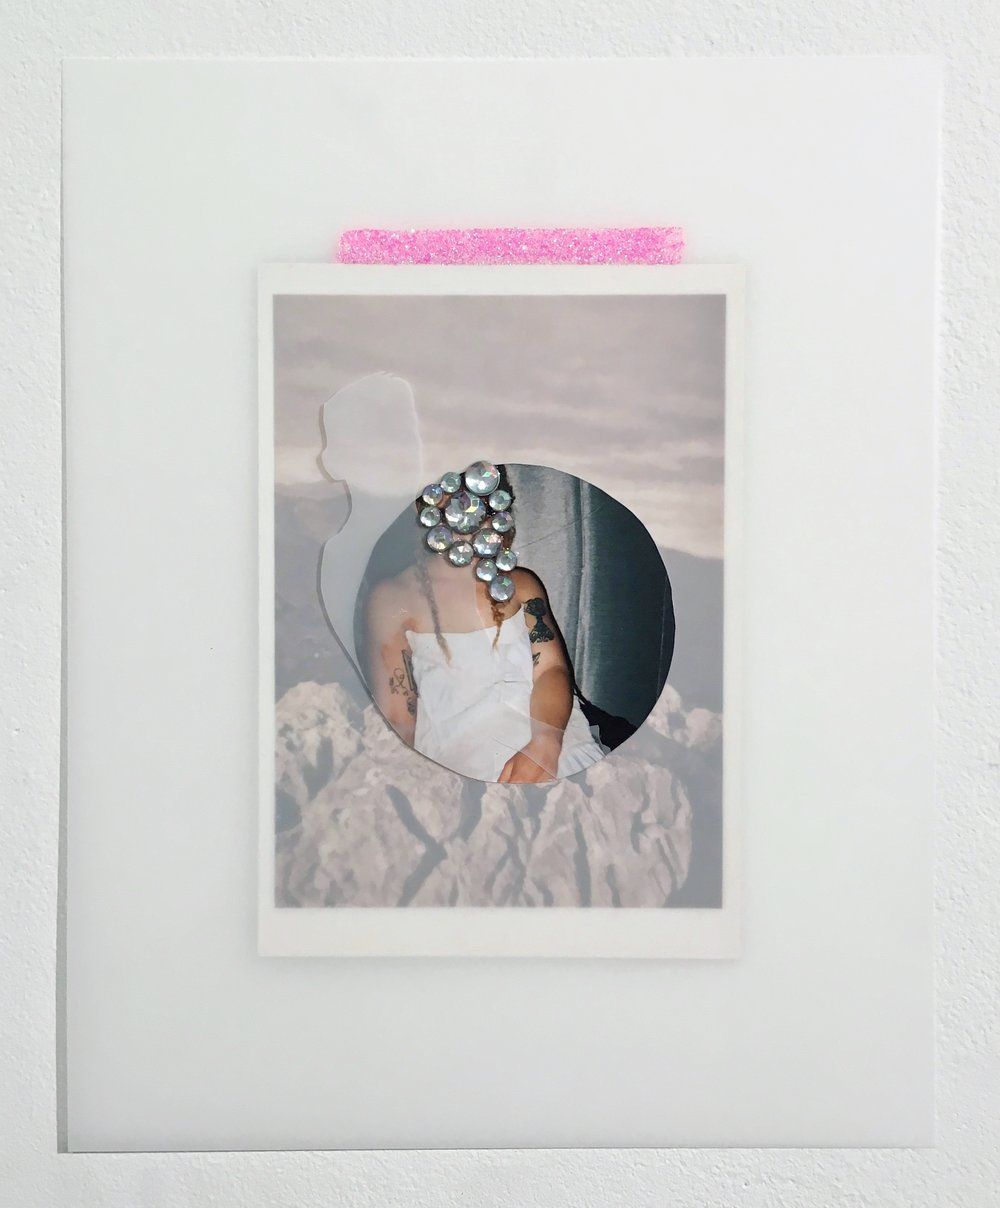 Untitled (Hold tight butter cup), 2018, Collaged photographs, glitter, rhinestones, postcards, tape, and duralar, 10 x 8 inches.